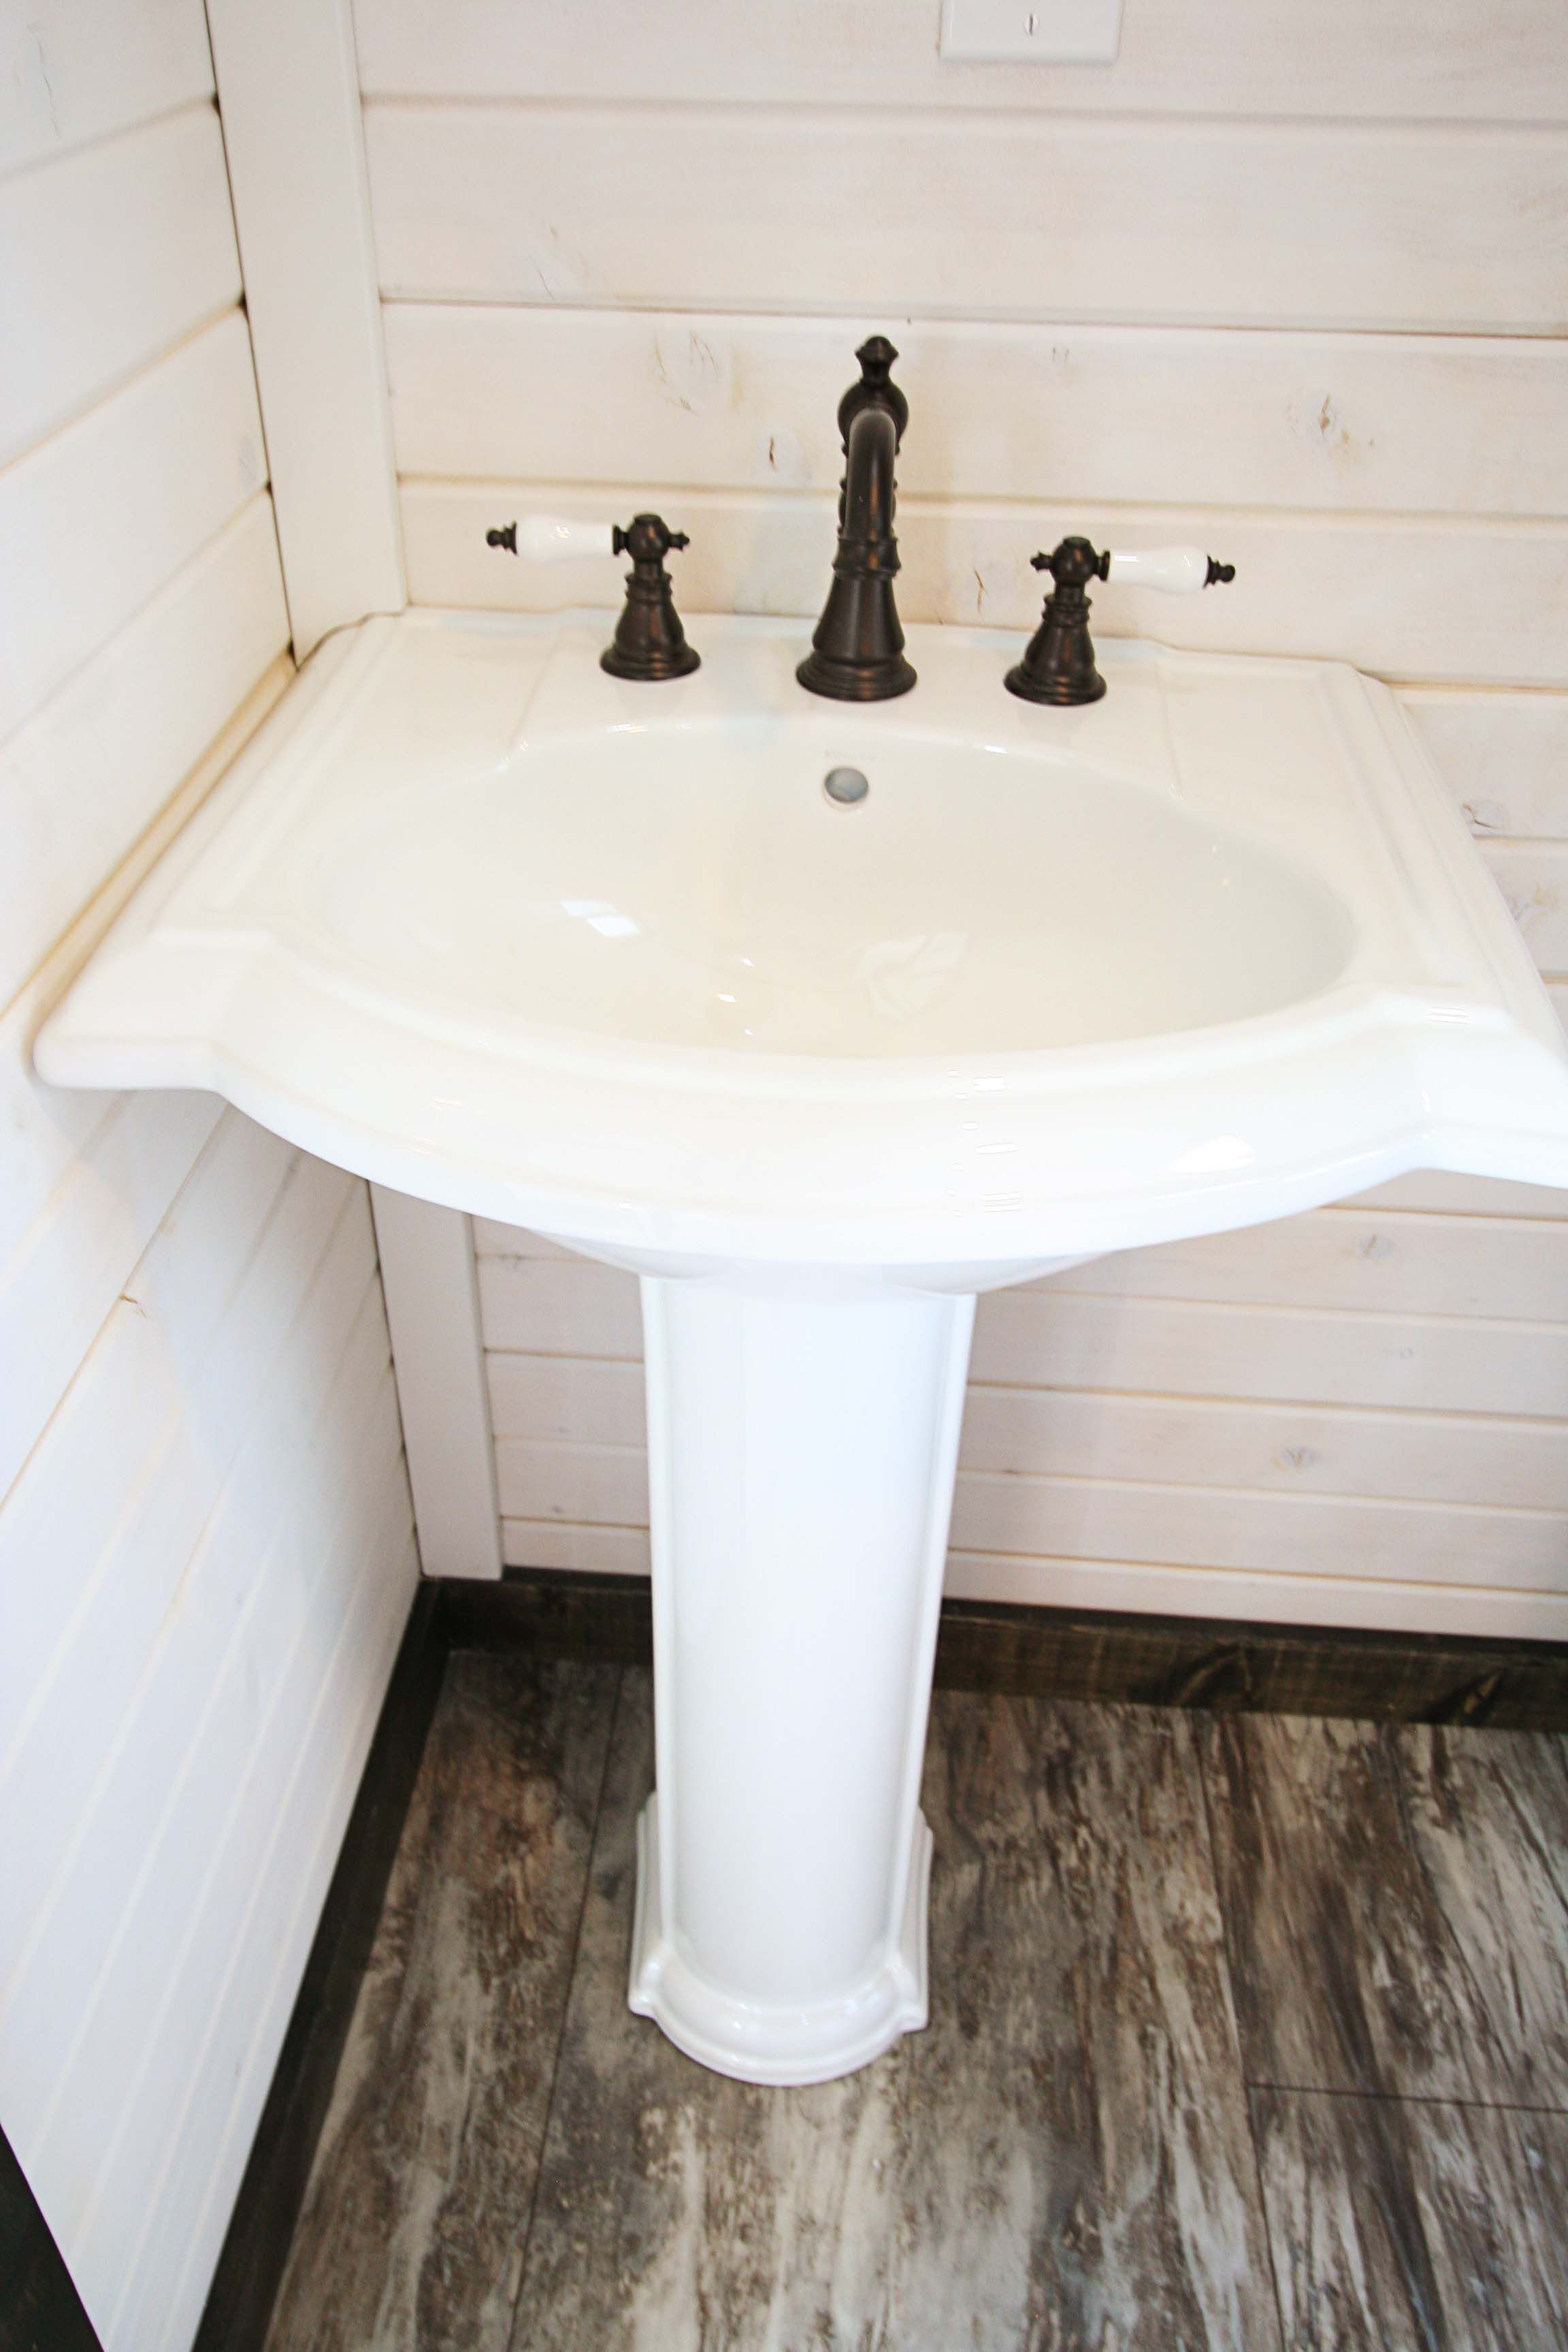 Spacious Family Friendly Tiny House With Images Pedestal Sink